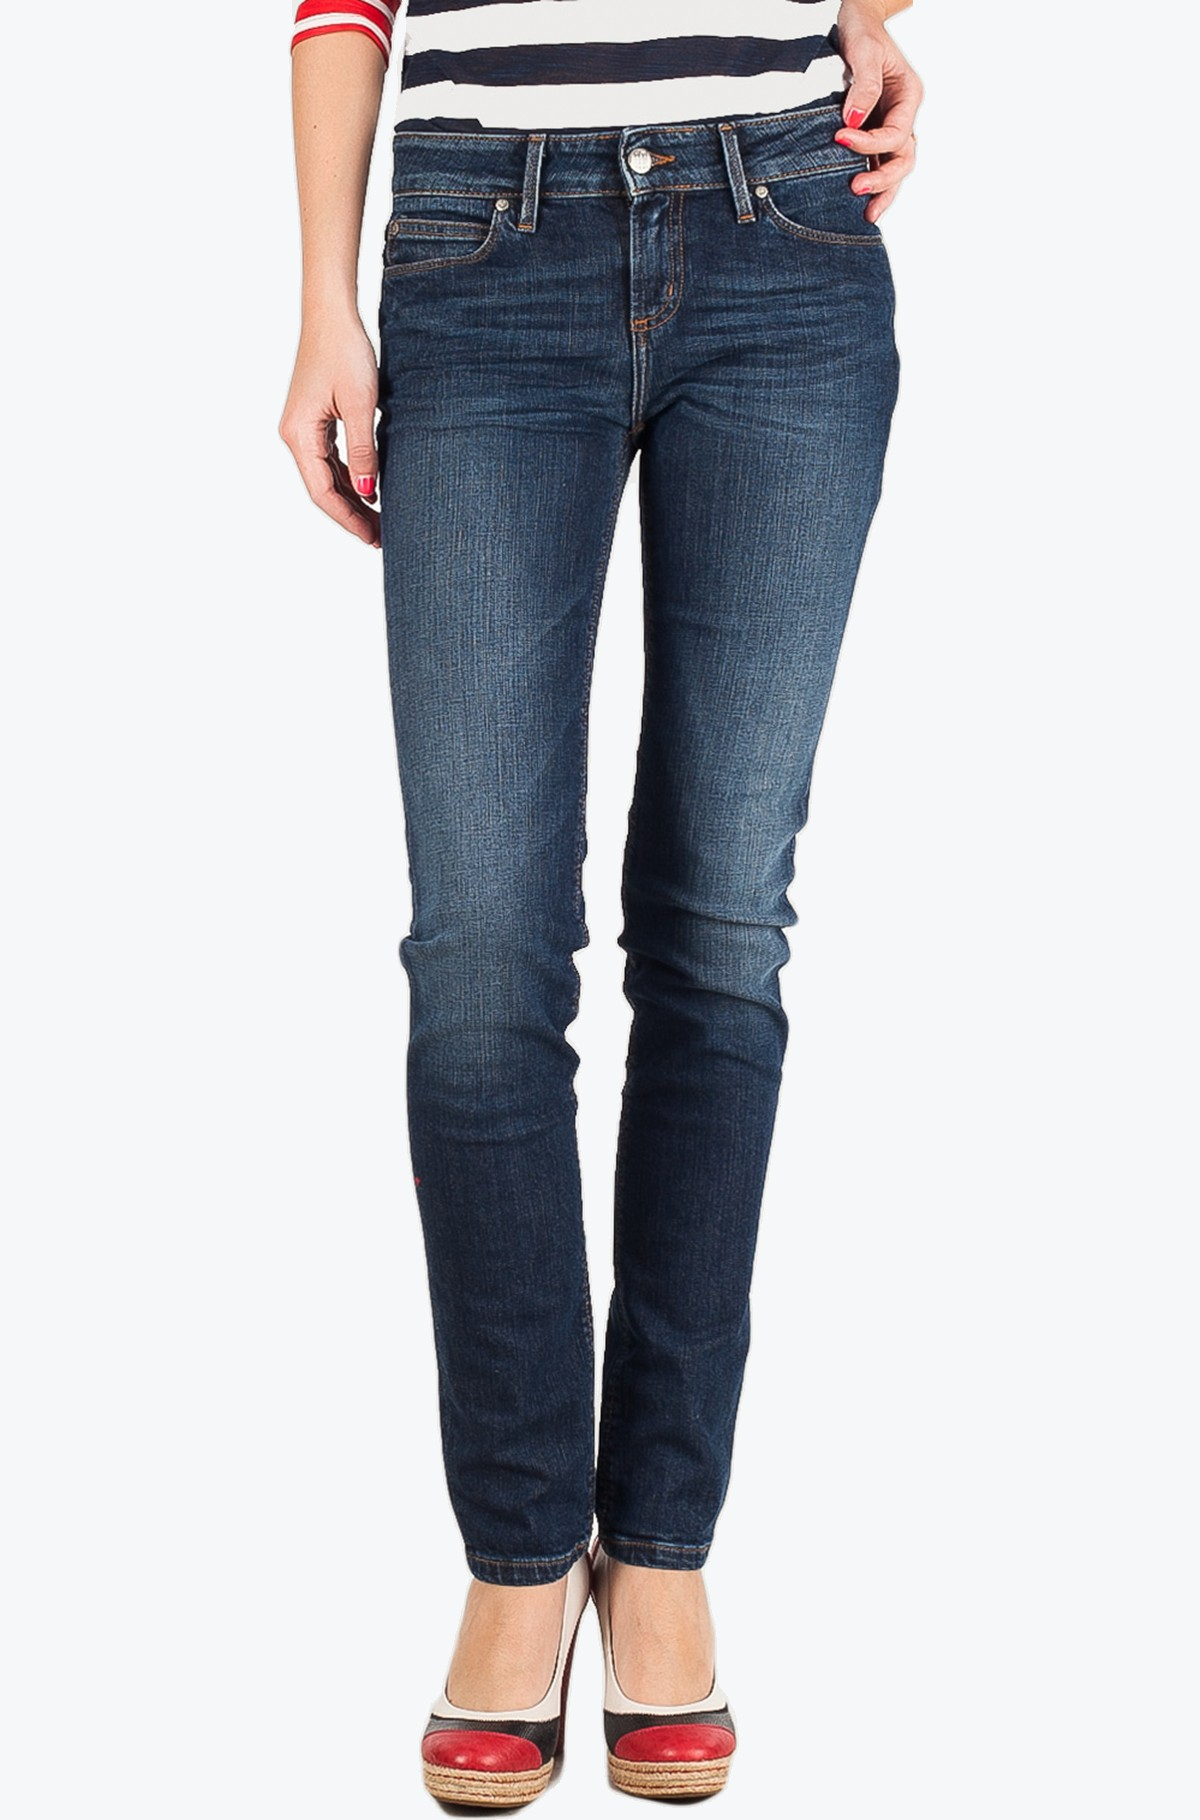 Jeans Milan Absolute Blue-full-1